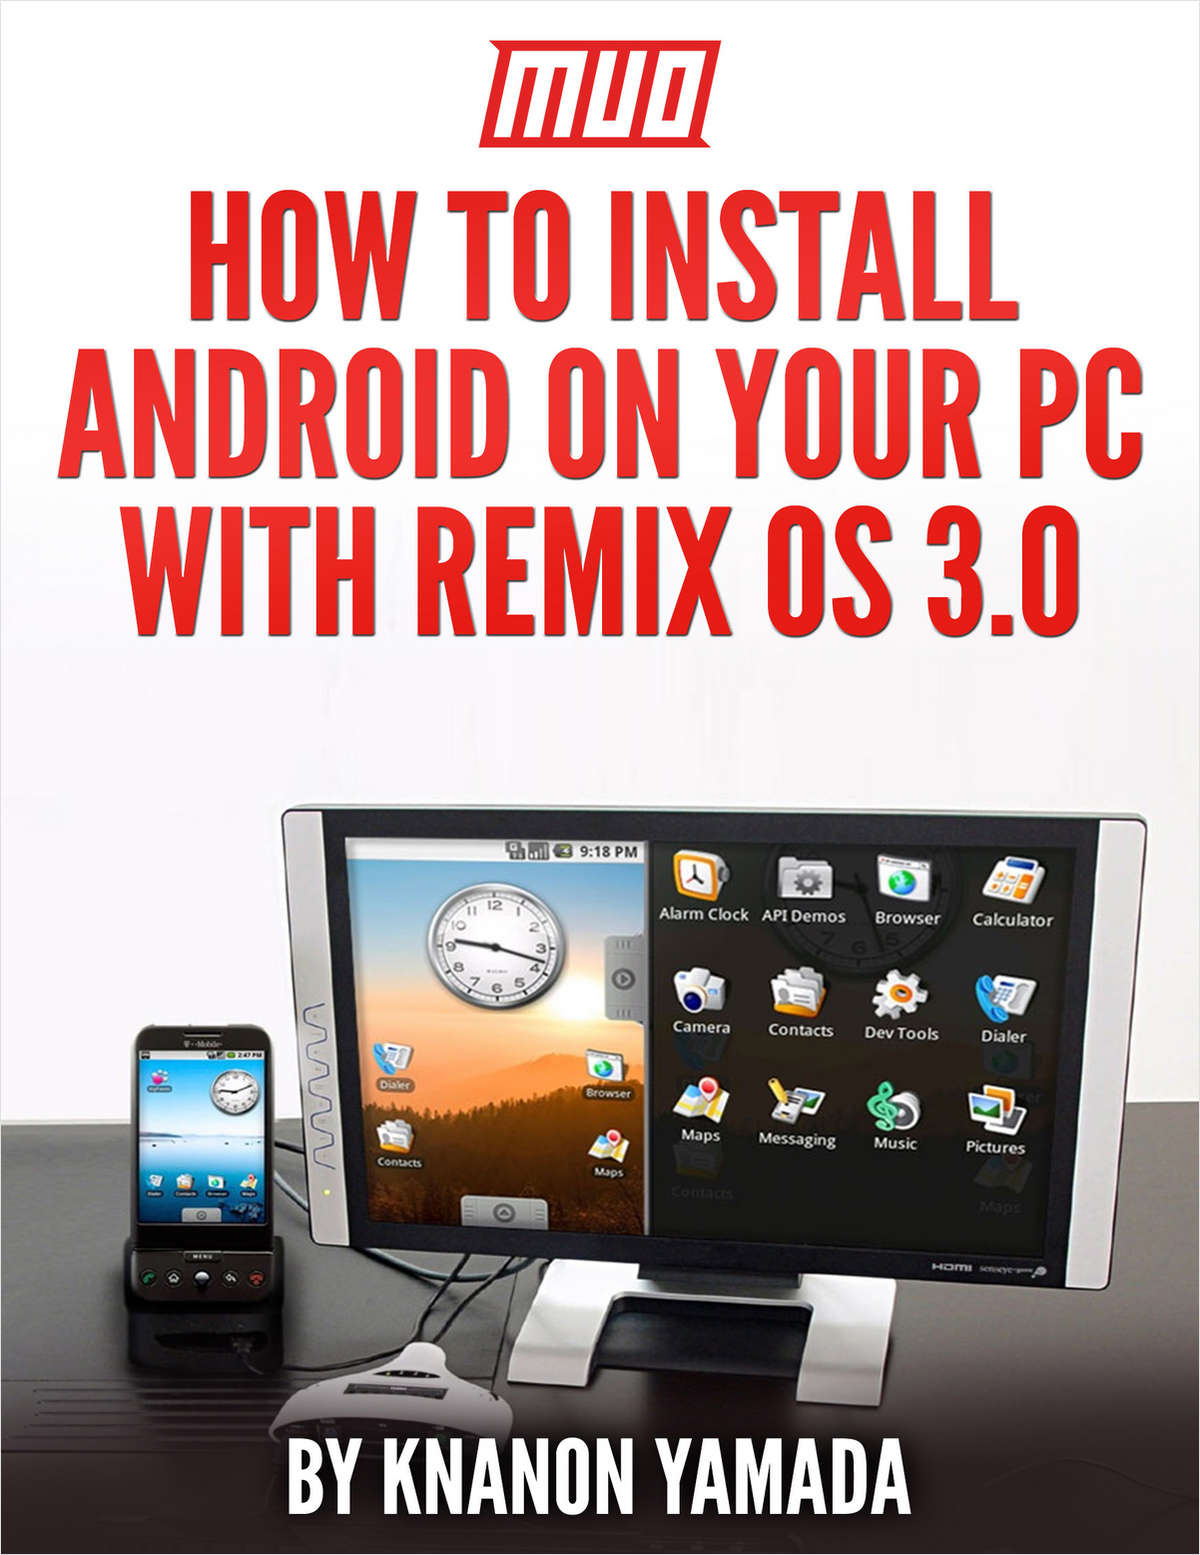 How to Install Android on Your PC With Remix OS 3.0